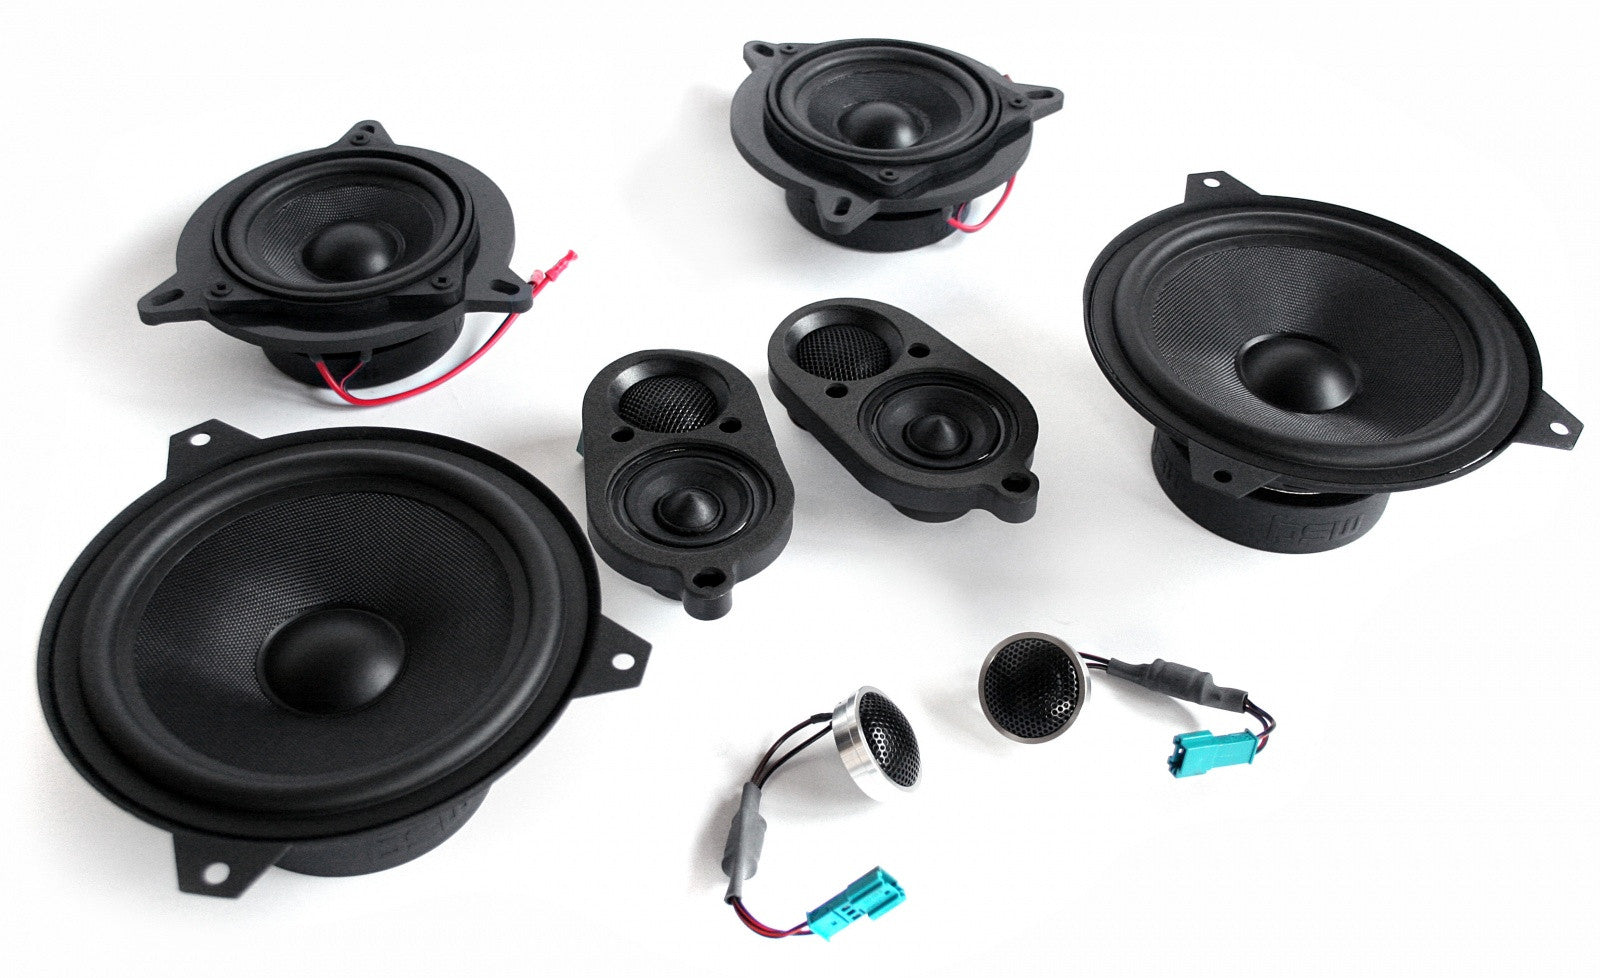 Stage One BMW Speaker Upgrade Kit engineered for your specific BMW ...